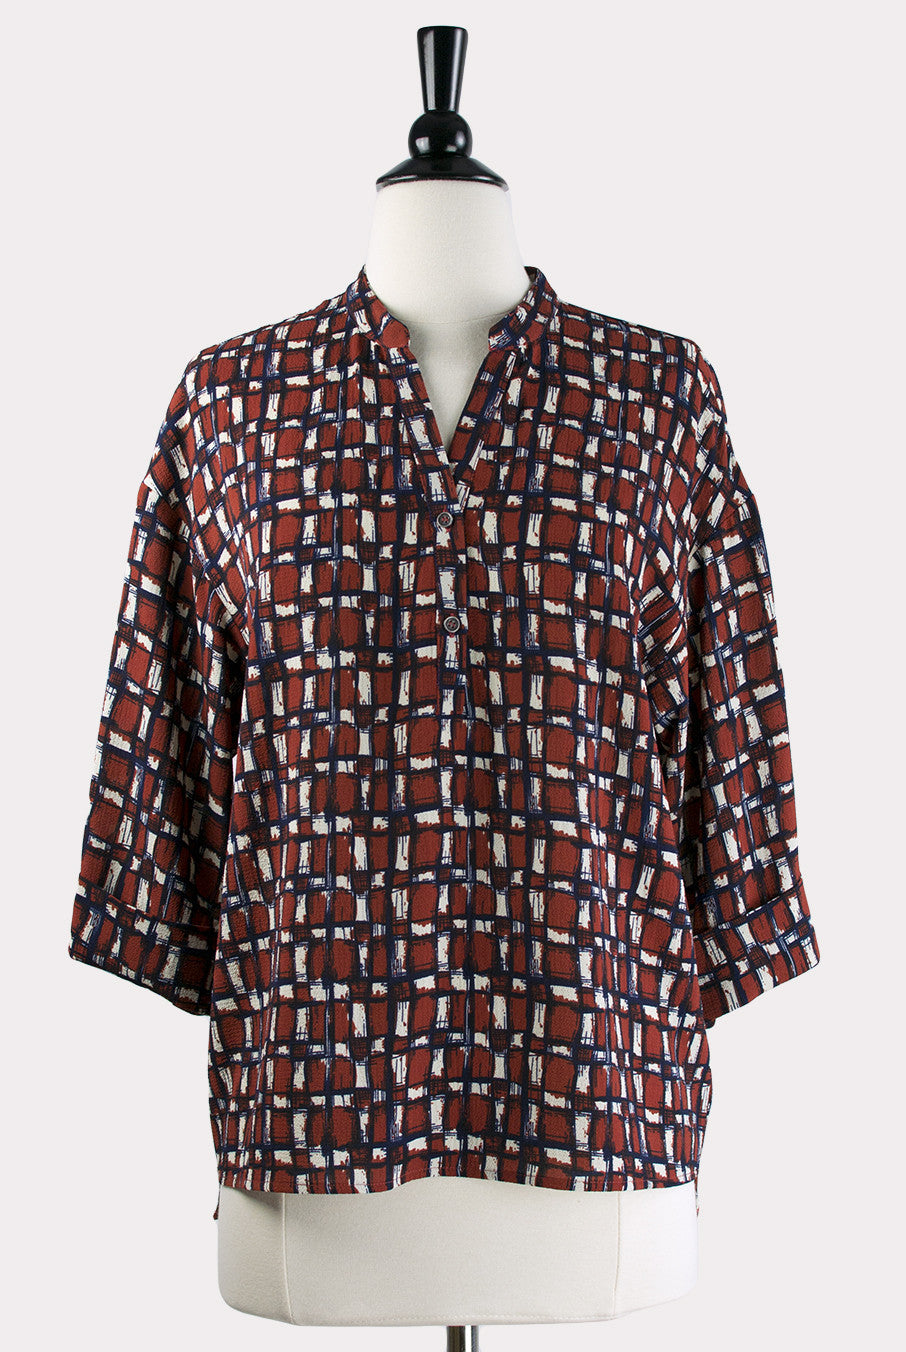 f67c6e2476570f Ina Print Blouse by Eden Society - Hourglass Boutique